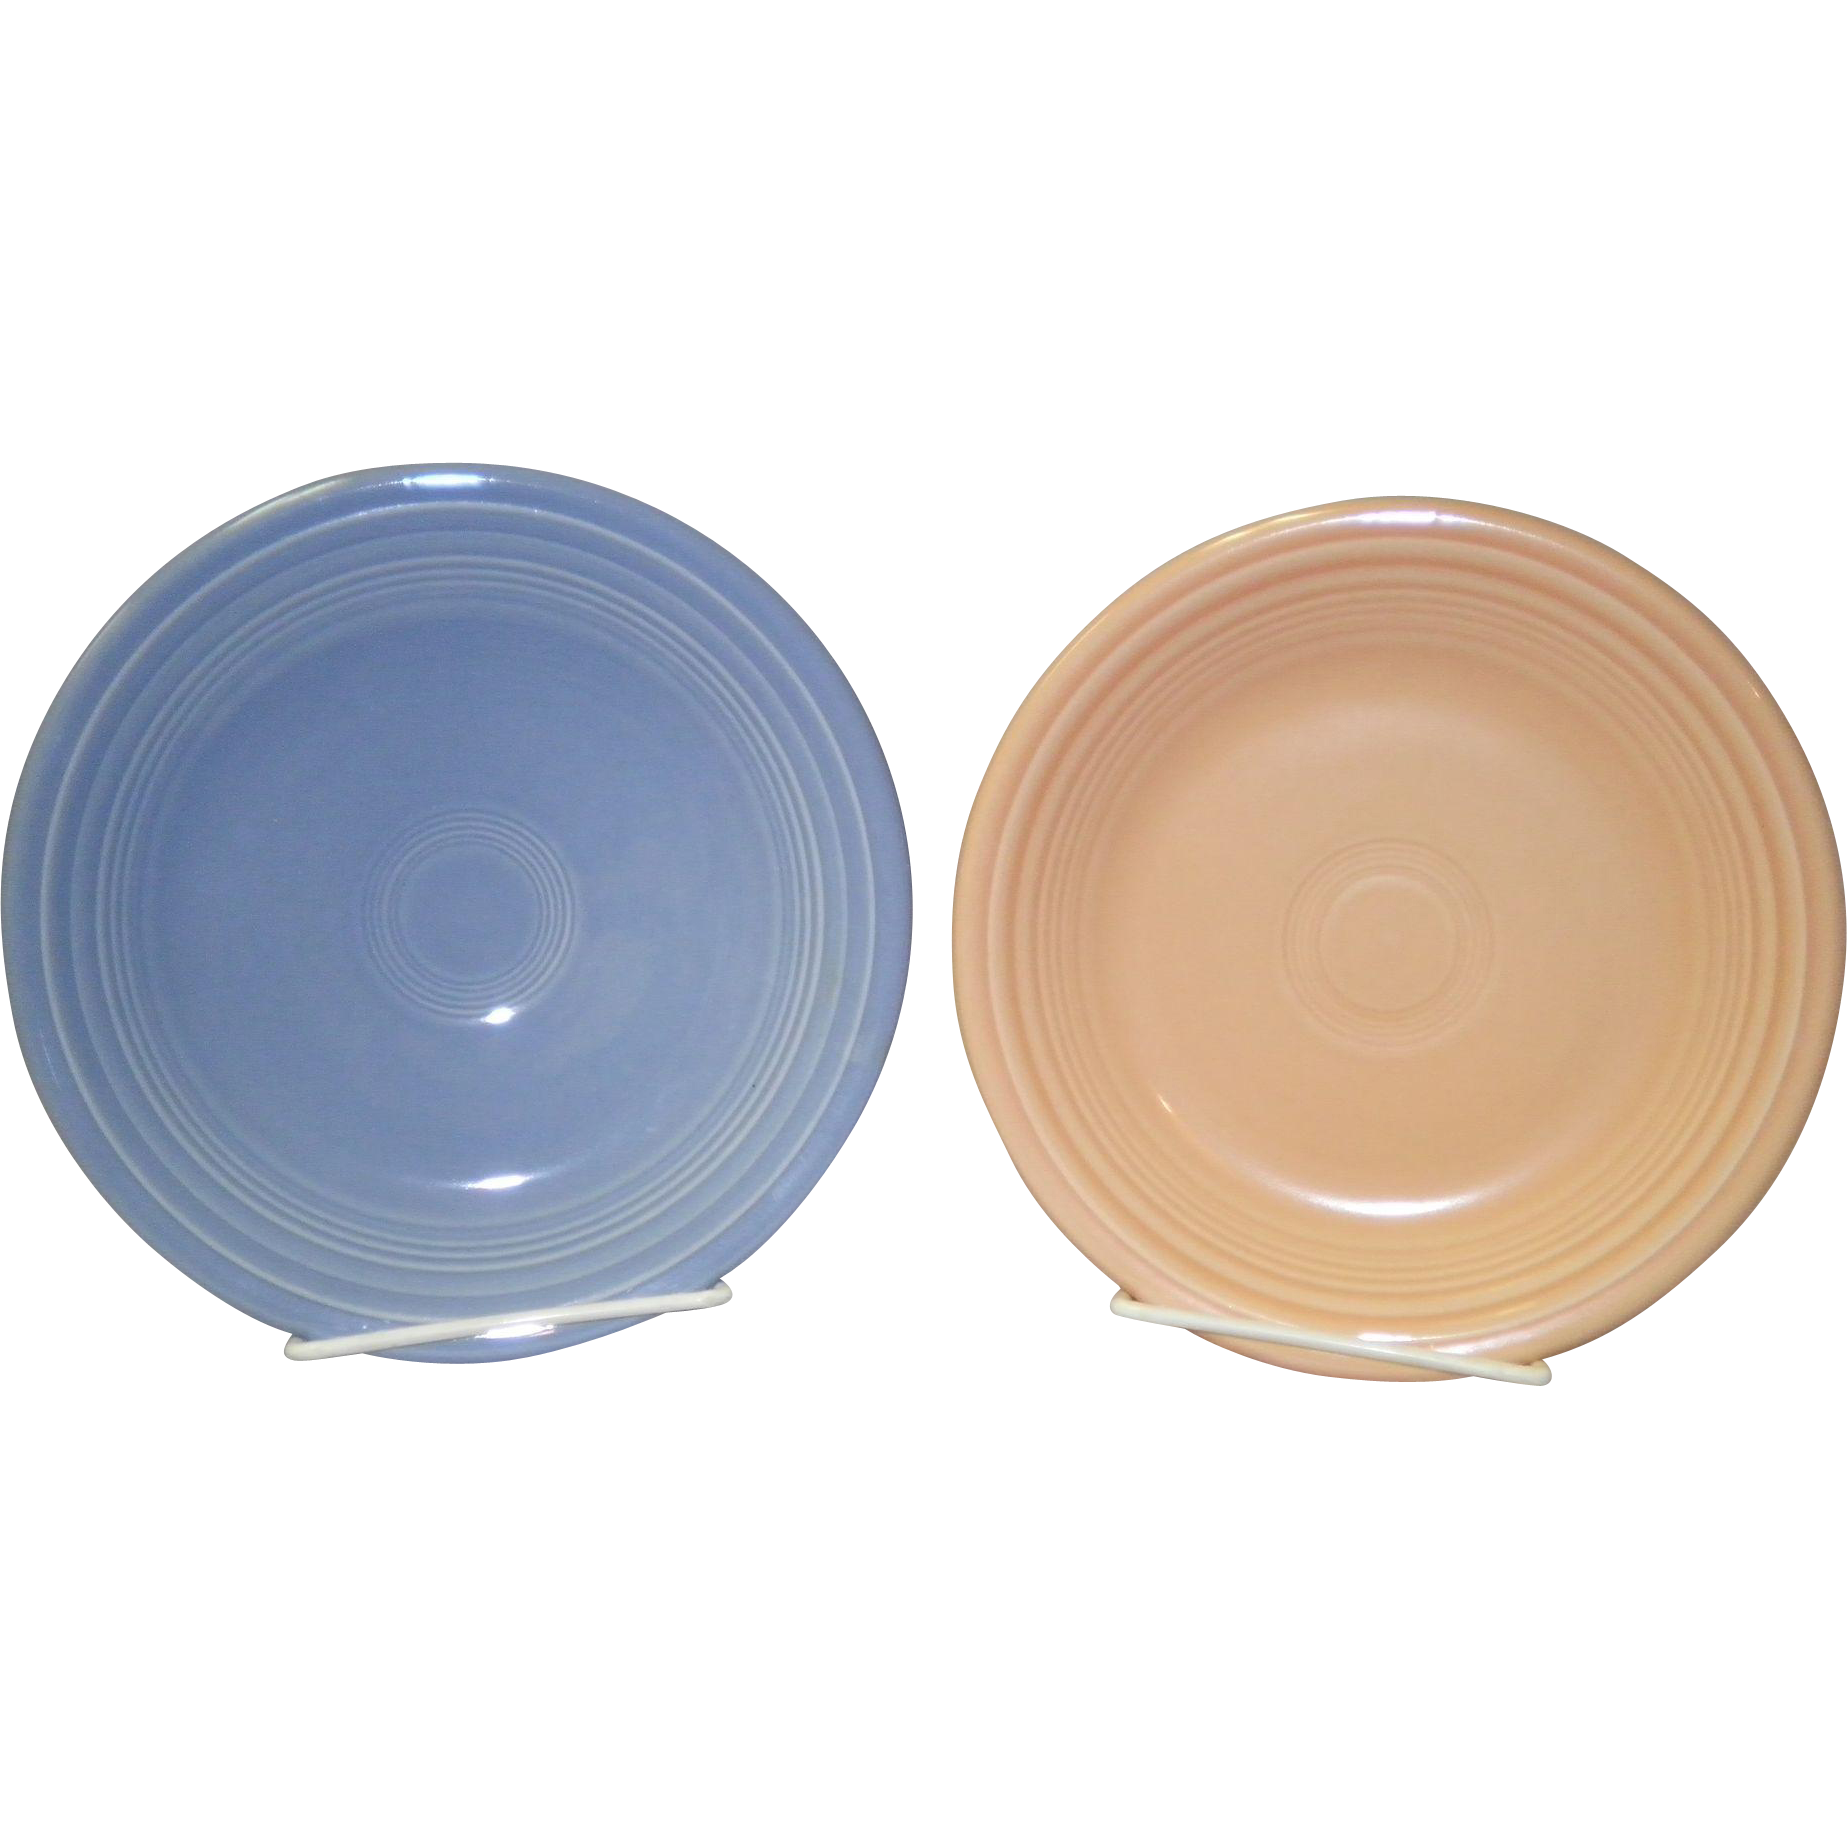 "Set Of 2 Fiesta 7 1/4"" Plates"